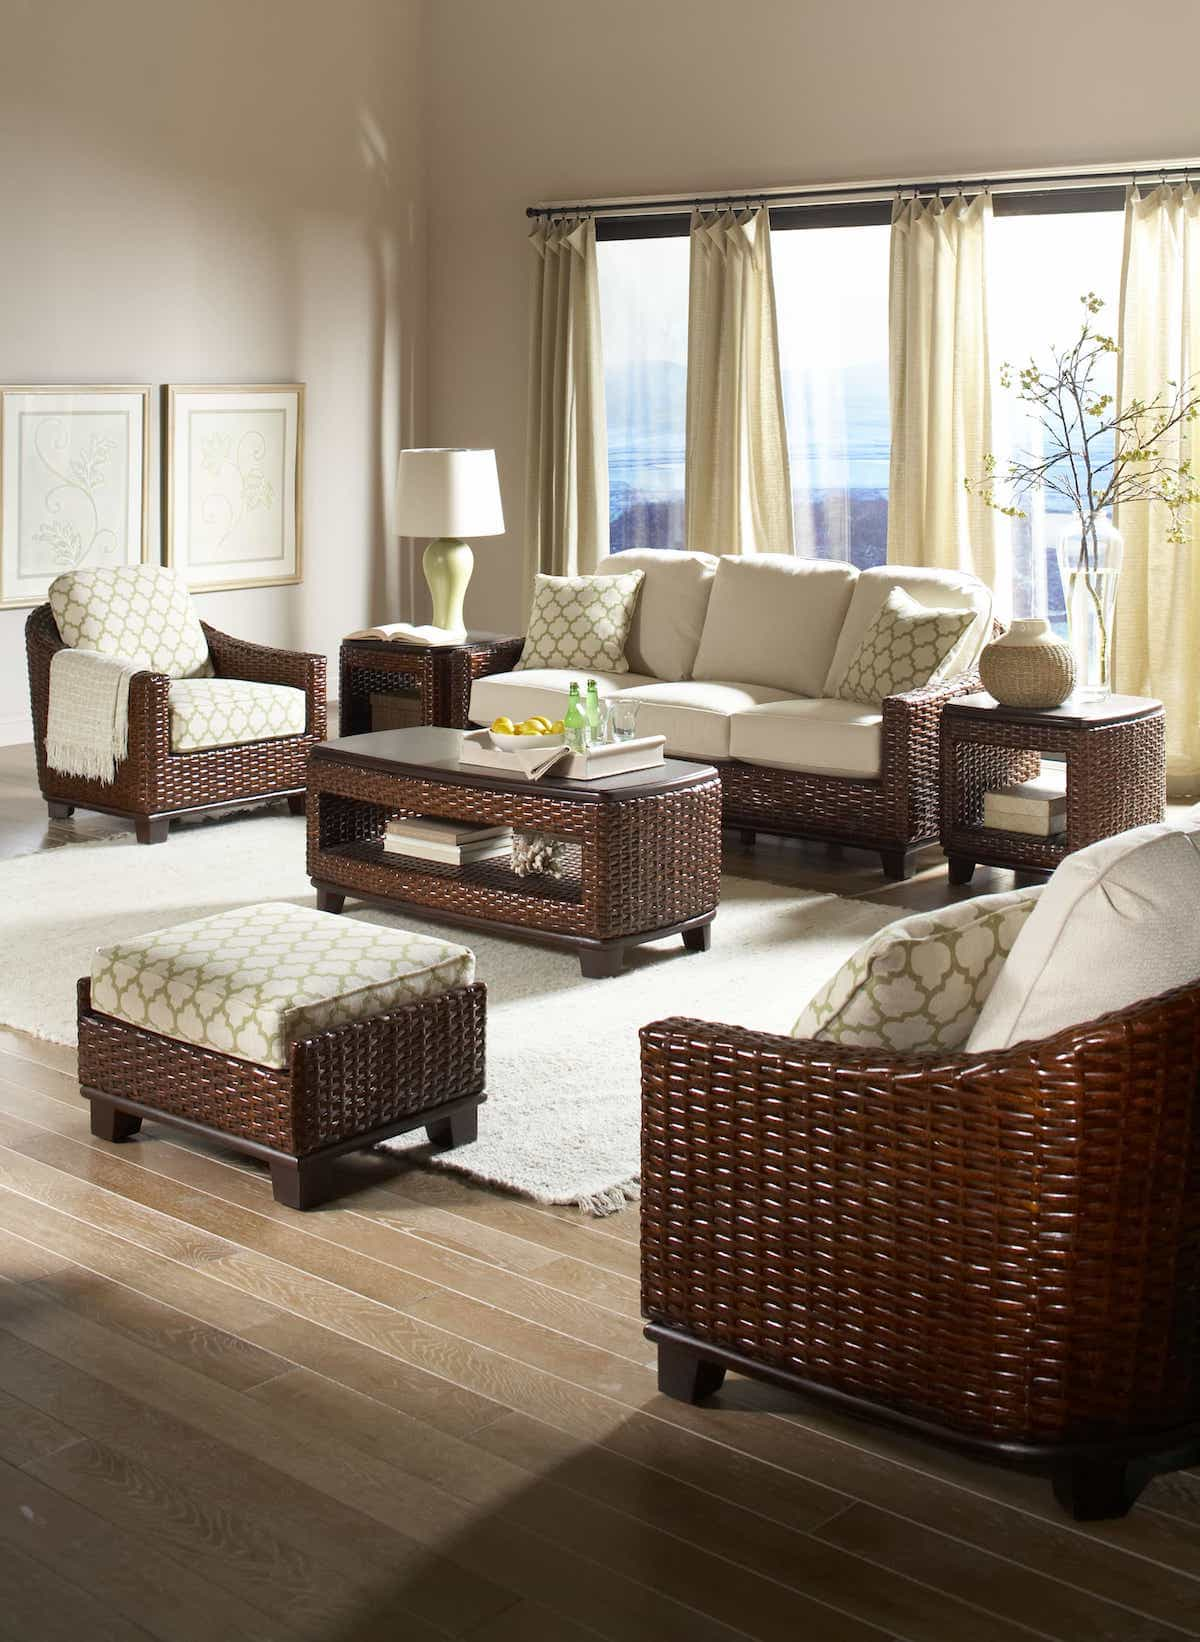 Classic Living Room Furniture Set With Rattan Table And Chairs With Sisal Rug Flooring (View 6 of 15)